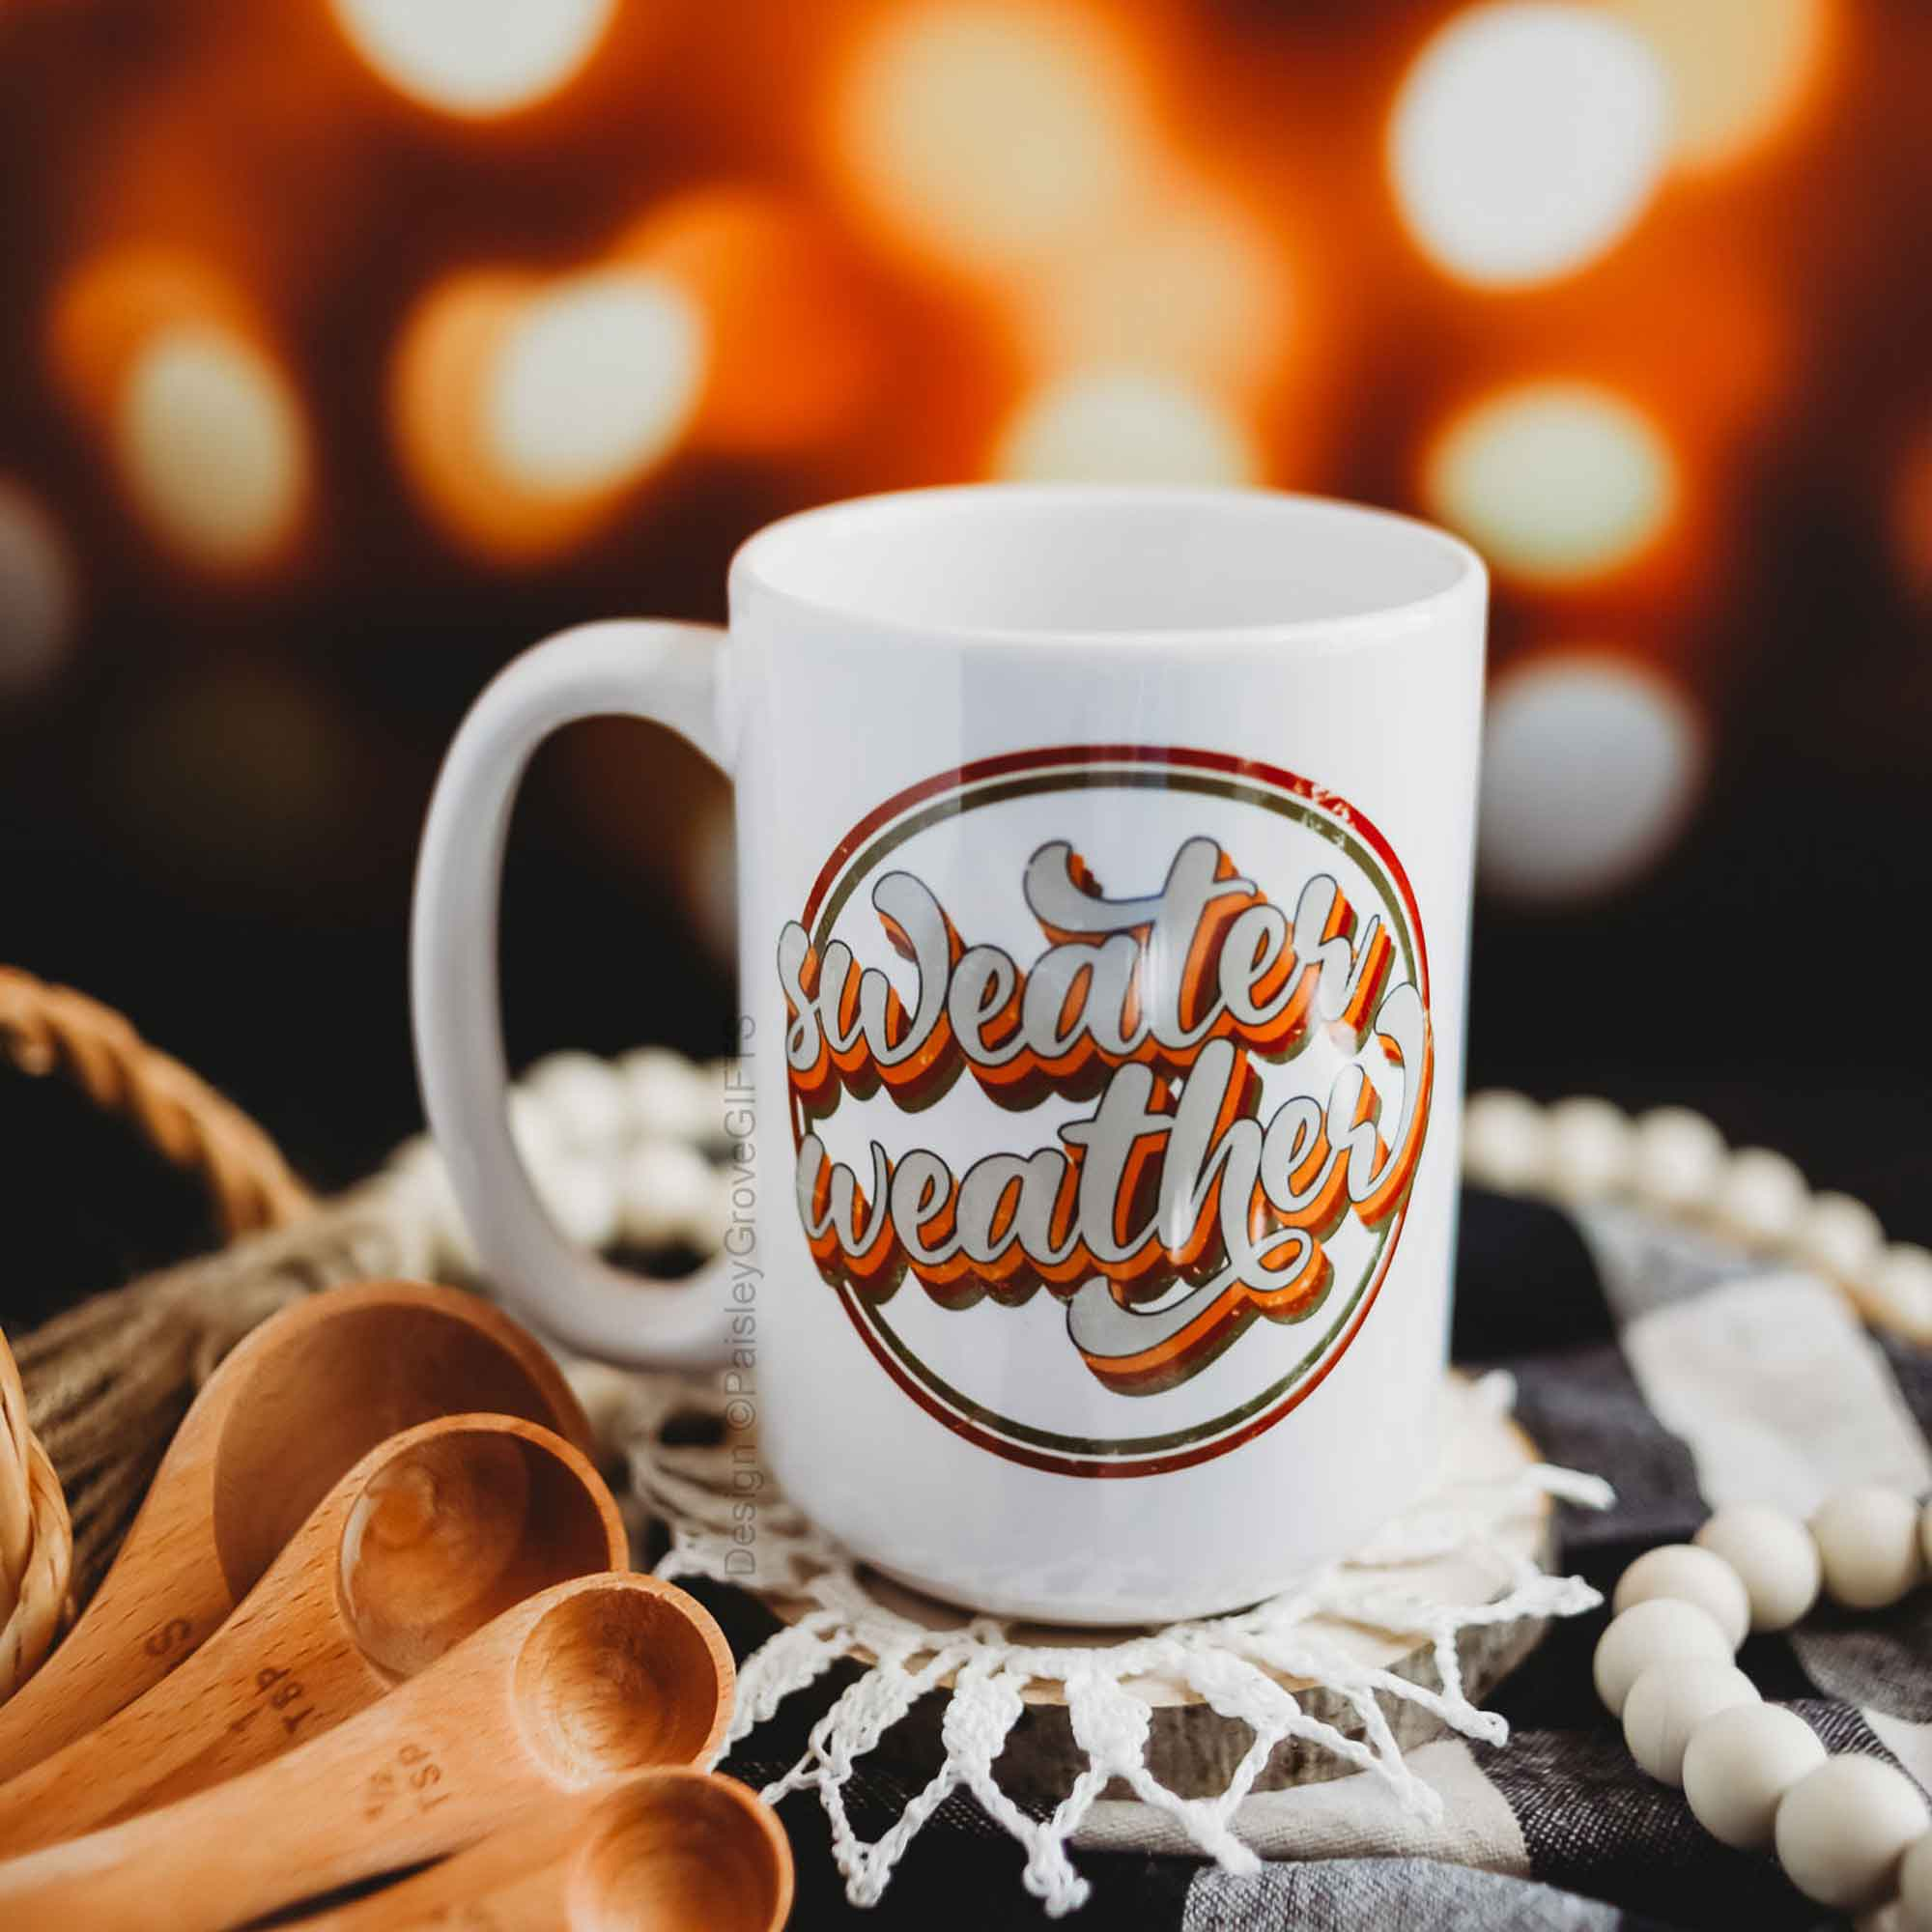 CopyrightPaisleyGroveGIFTS P002a Styled Sweater Weather 15 ounce mug for Fall Autumn Pumpkin Spice